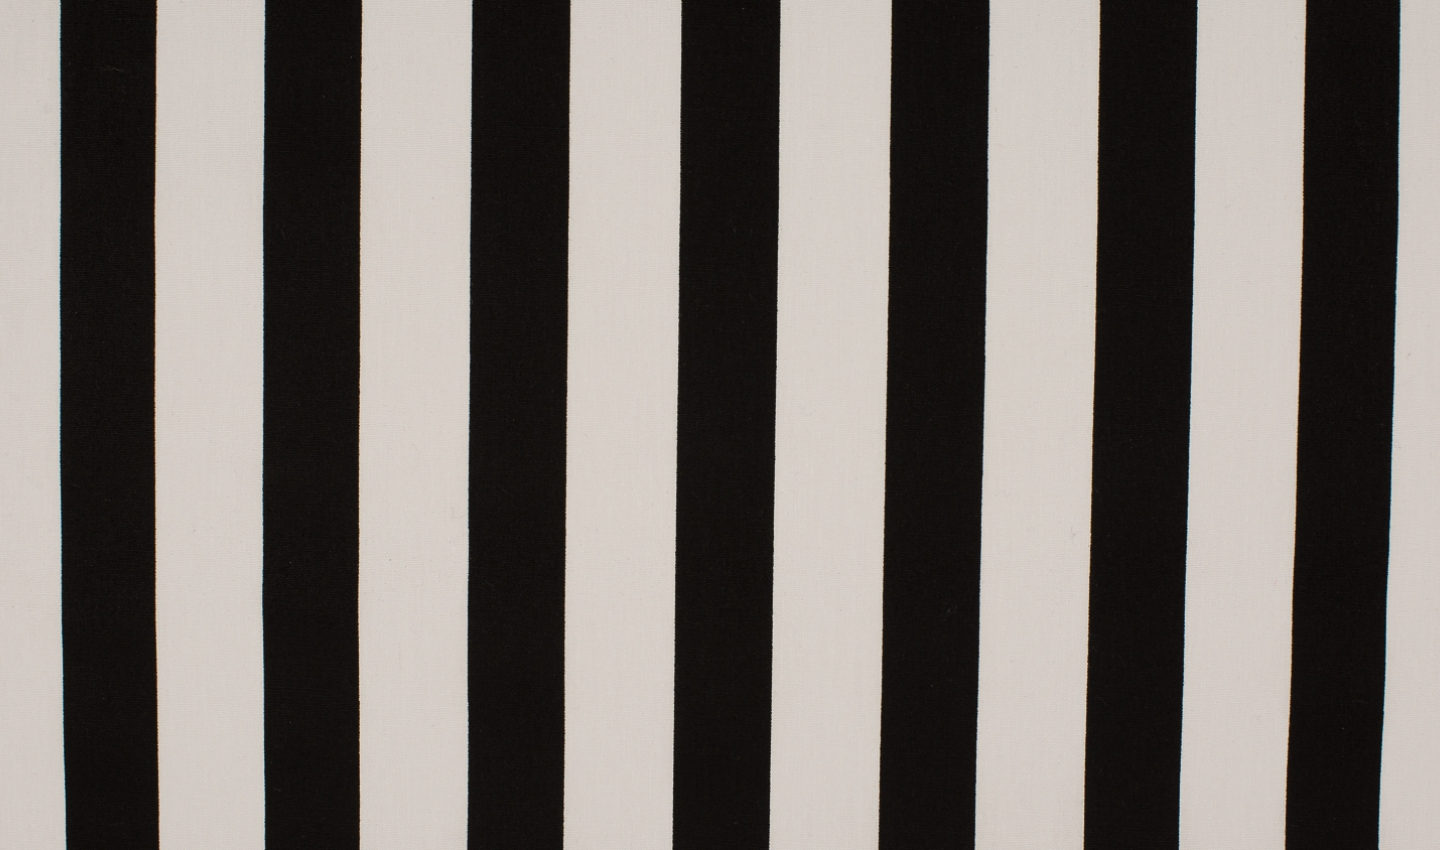 Minimals Stripes - black-white - 2,2cm